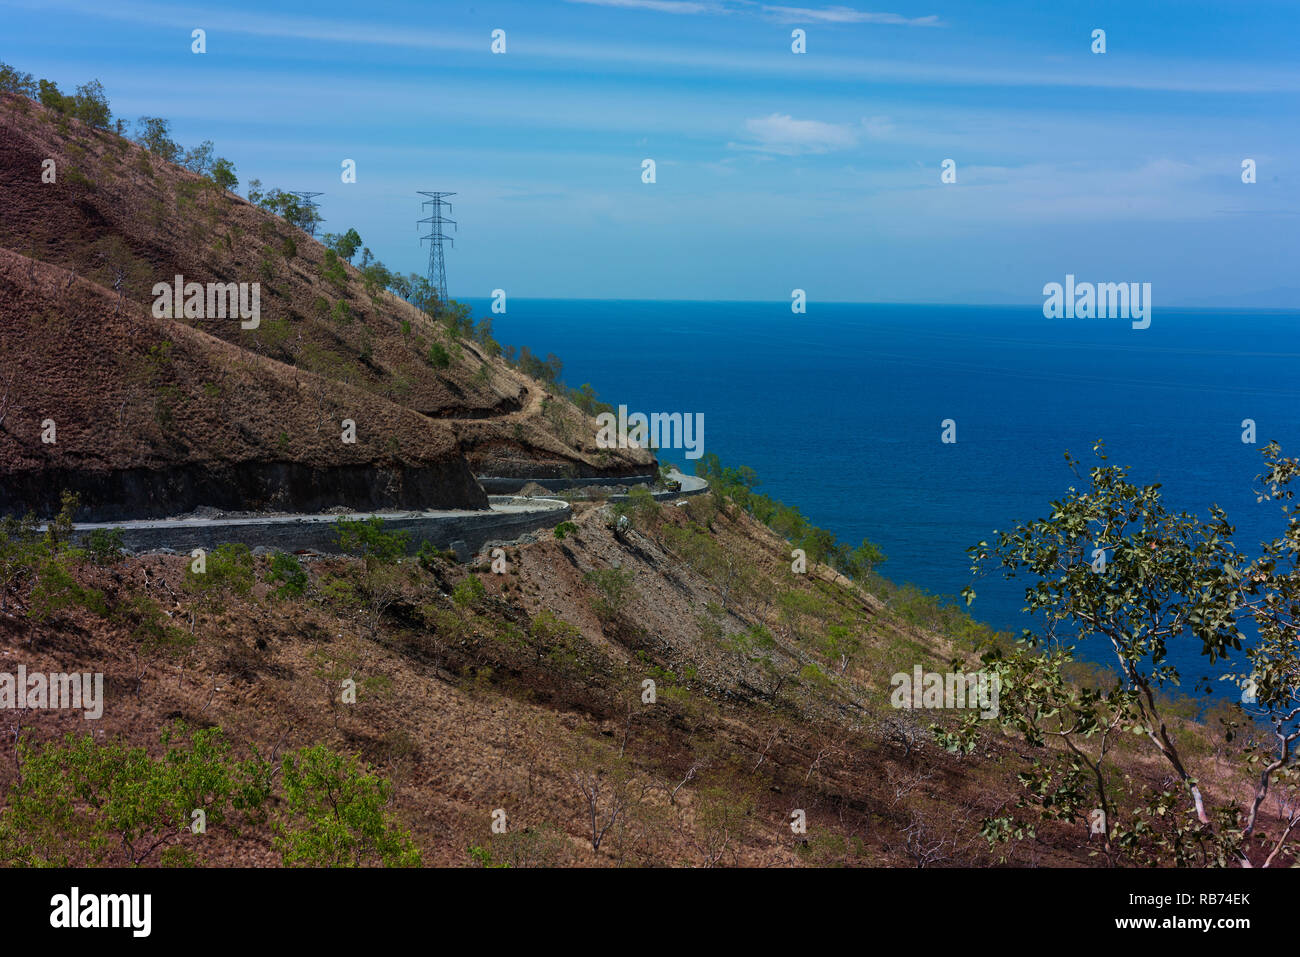 A newly constructed road on the north coast of Timor Leste at the end of the dry season. - Stock Image